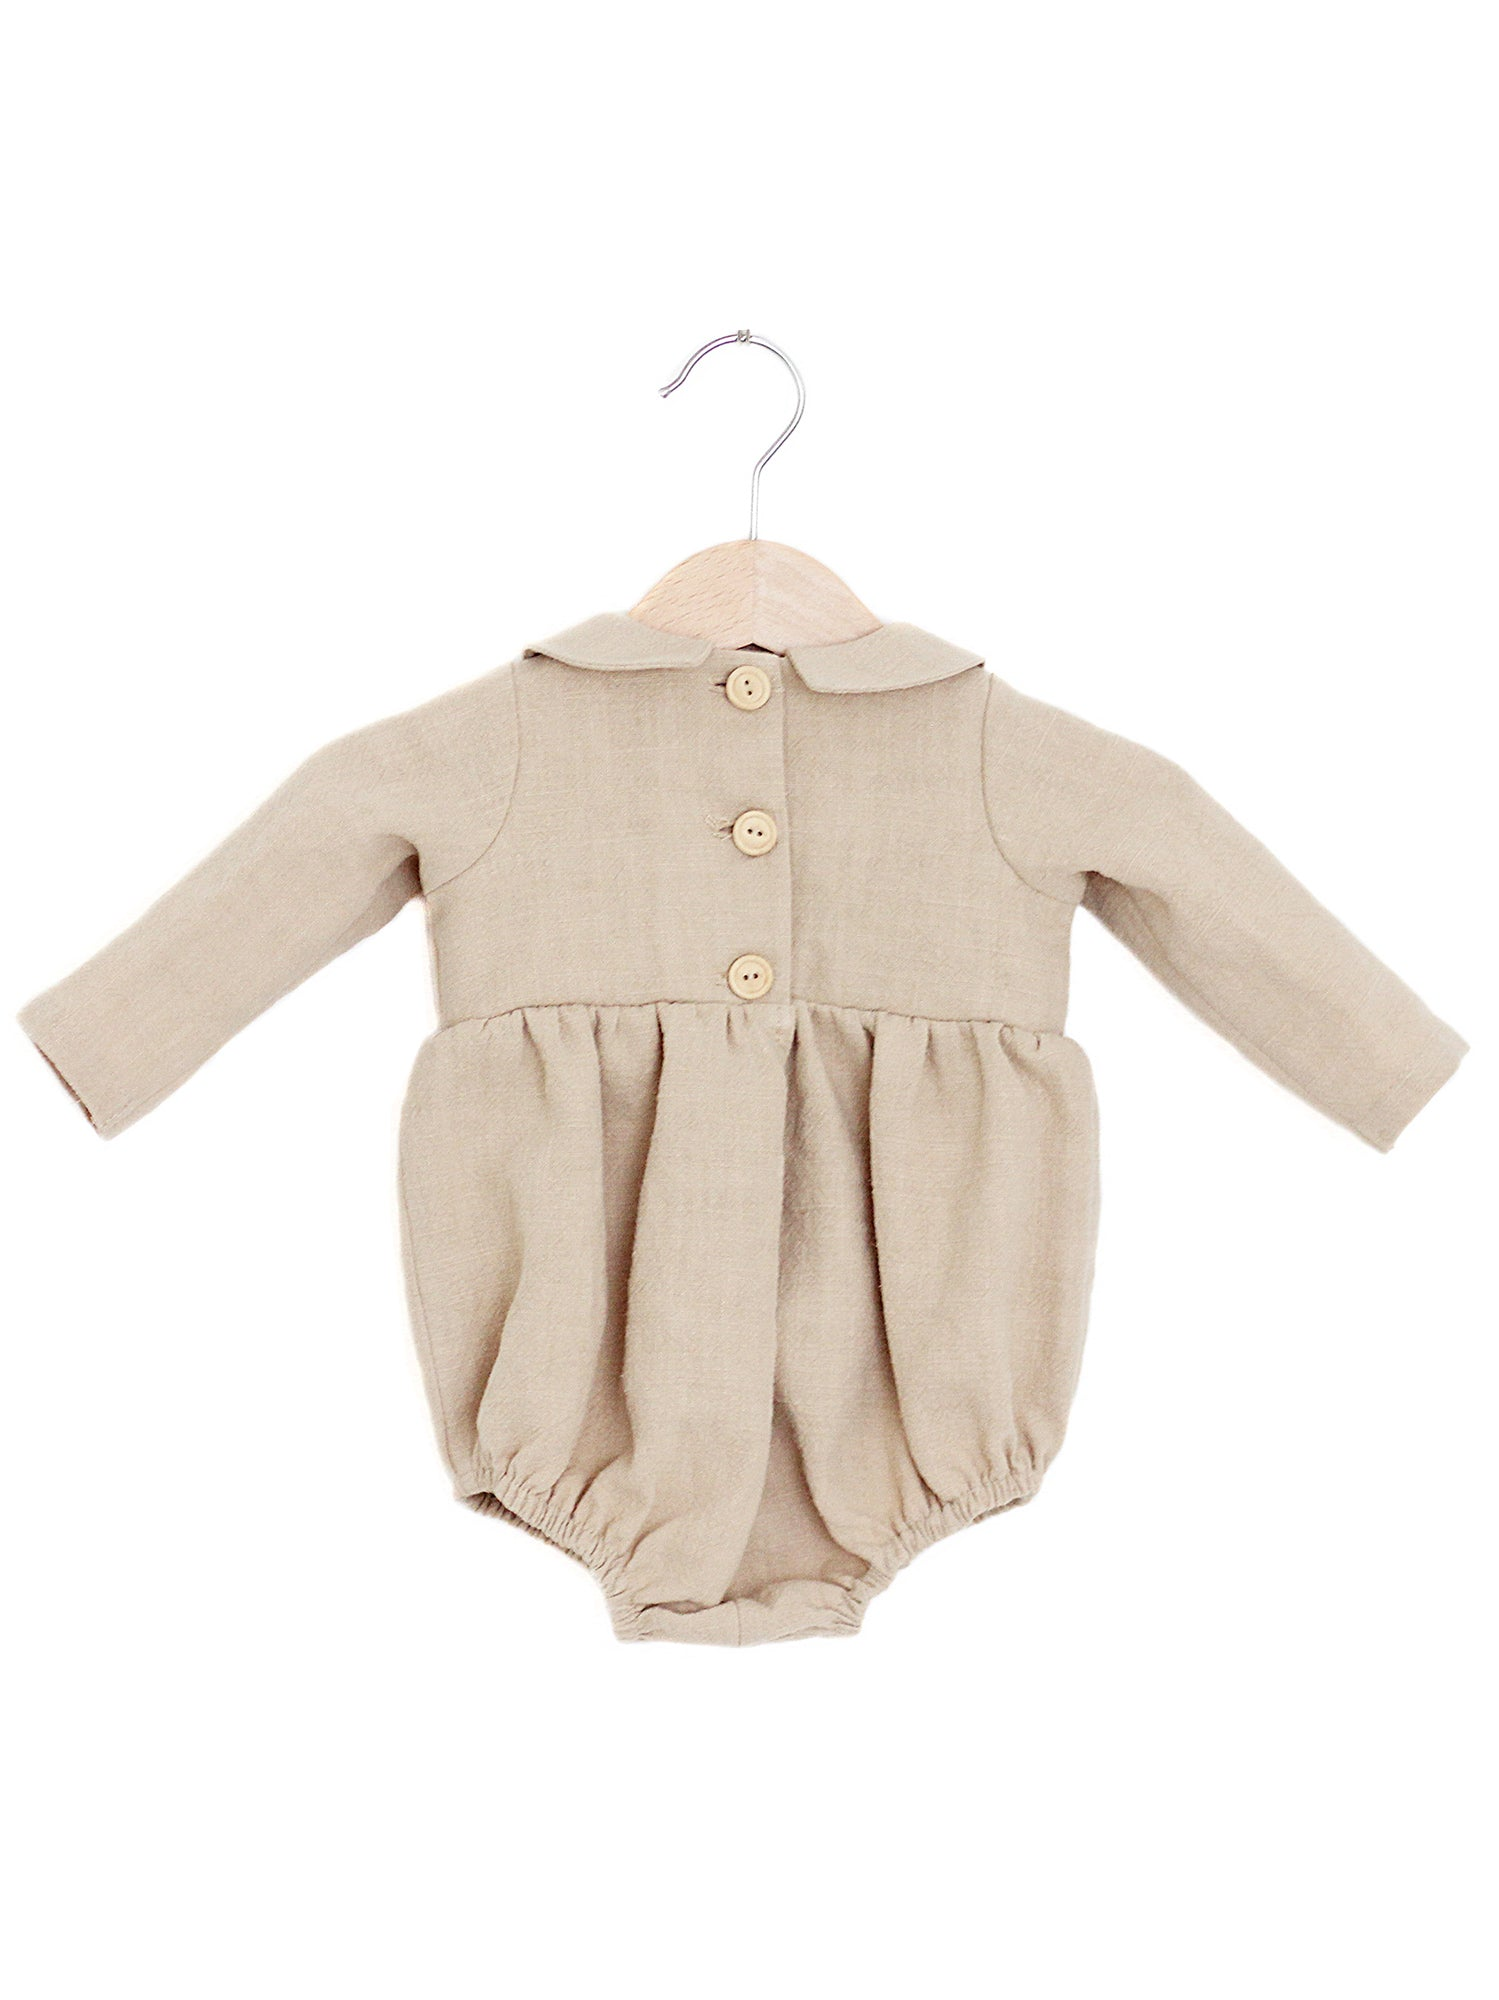 The Matilda: Linen Peter Pan Collar Romper, Beige